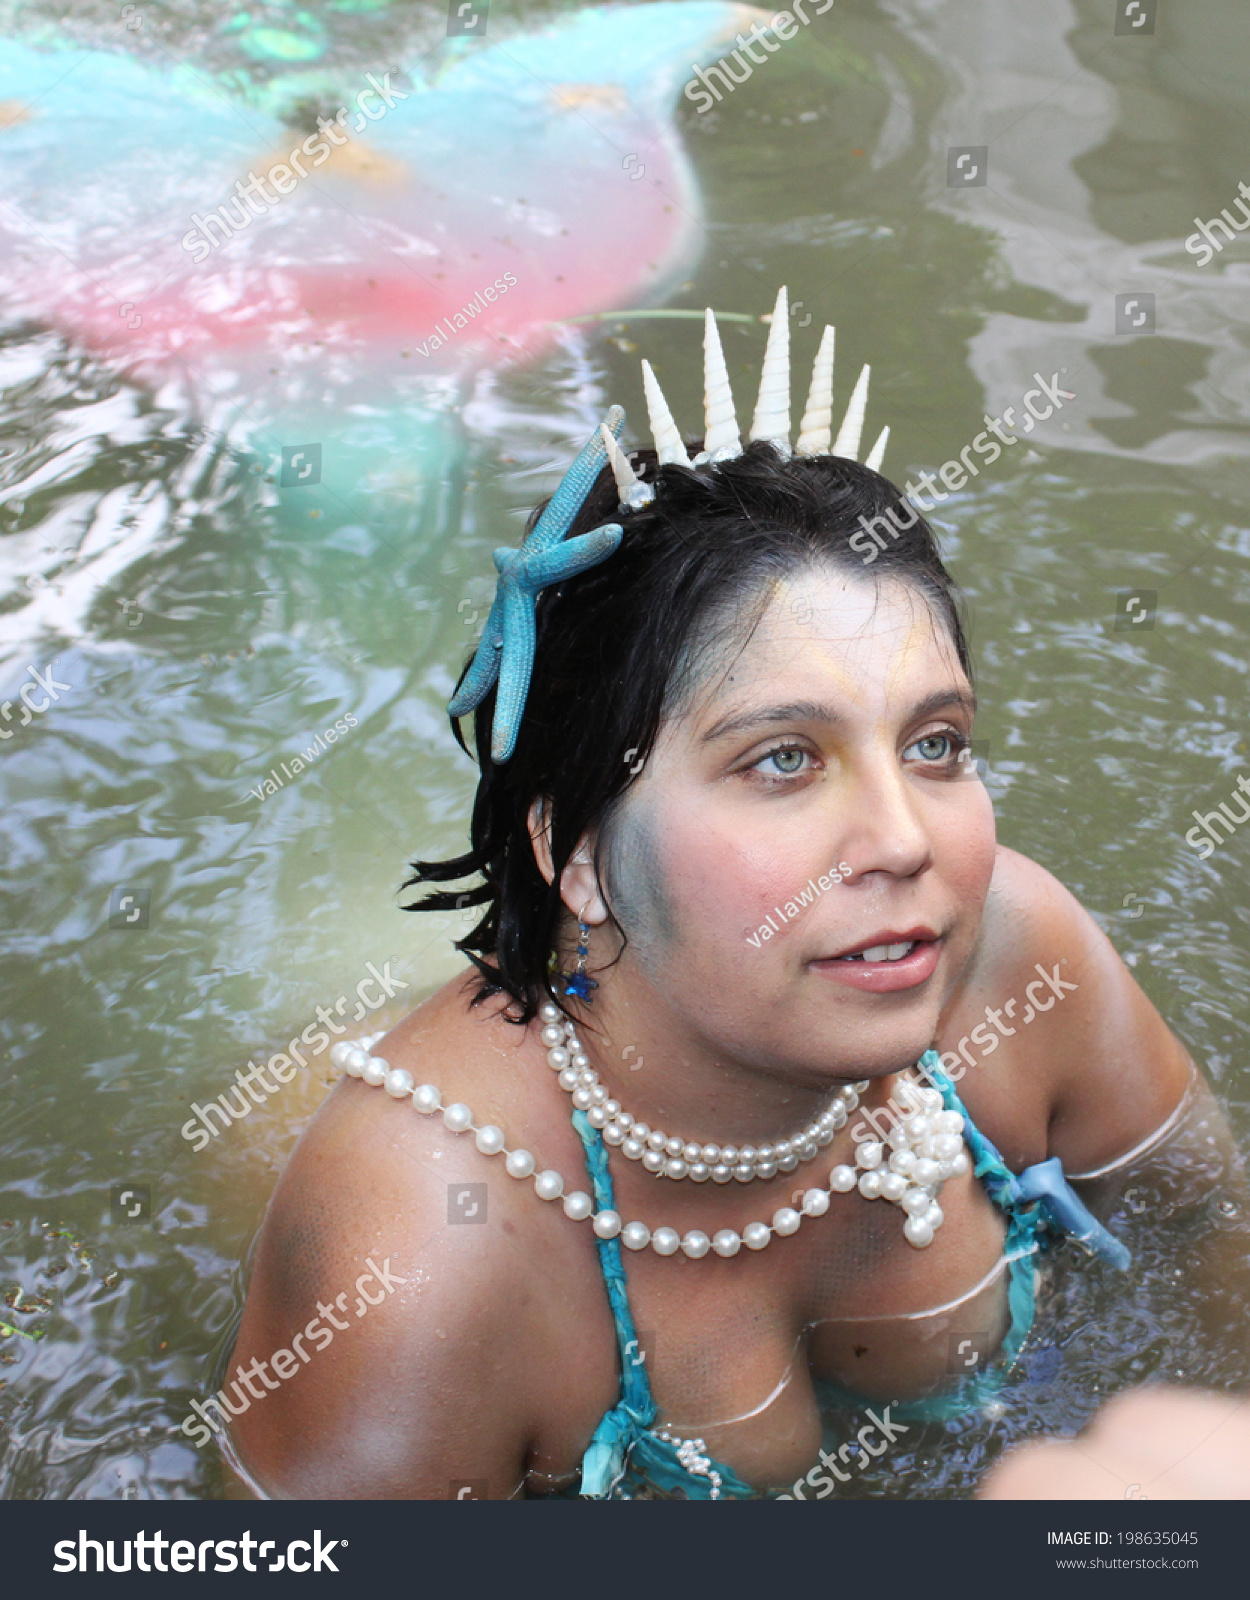 Renaissance Festival Sirens Stock Photo Muskogee Ok May A Mermaid Greets